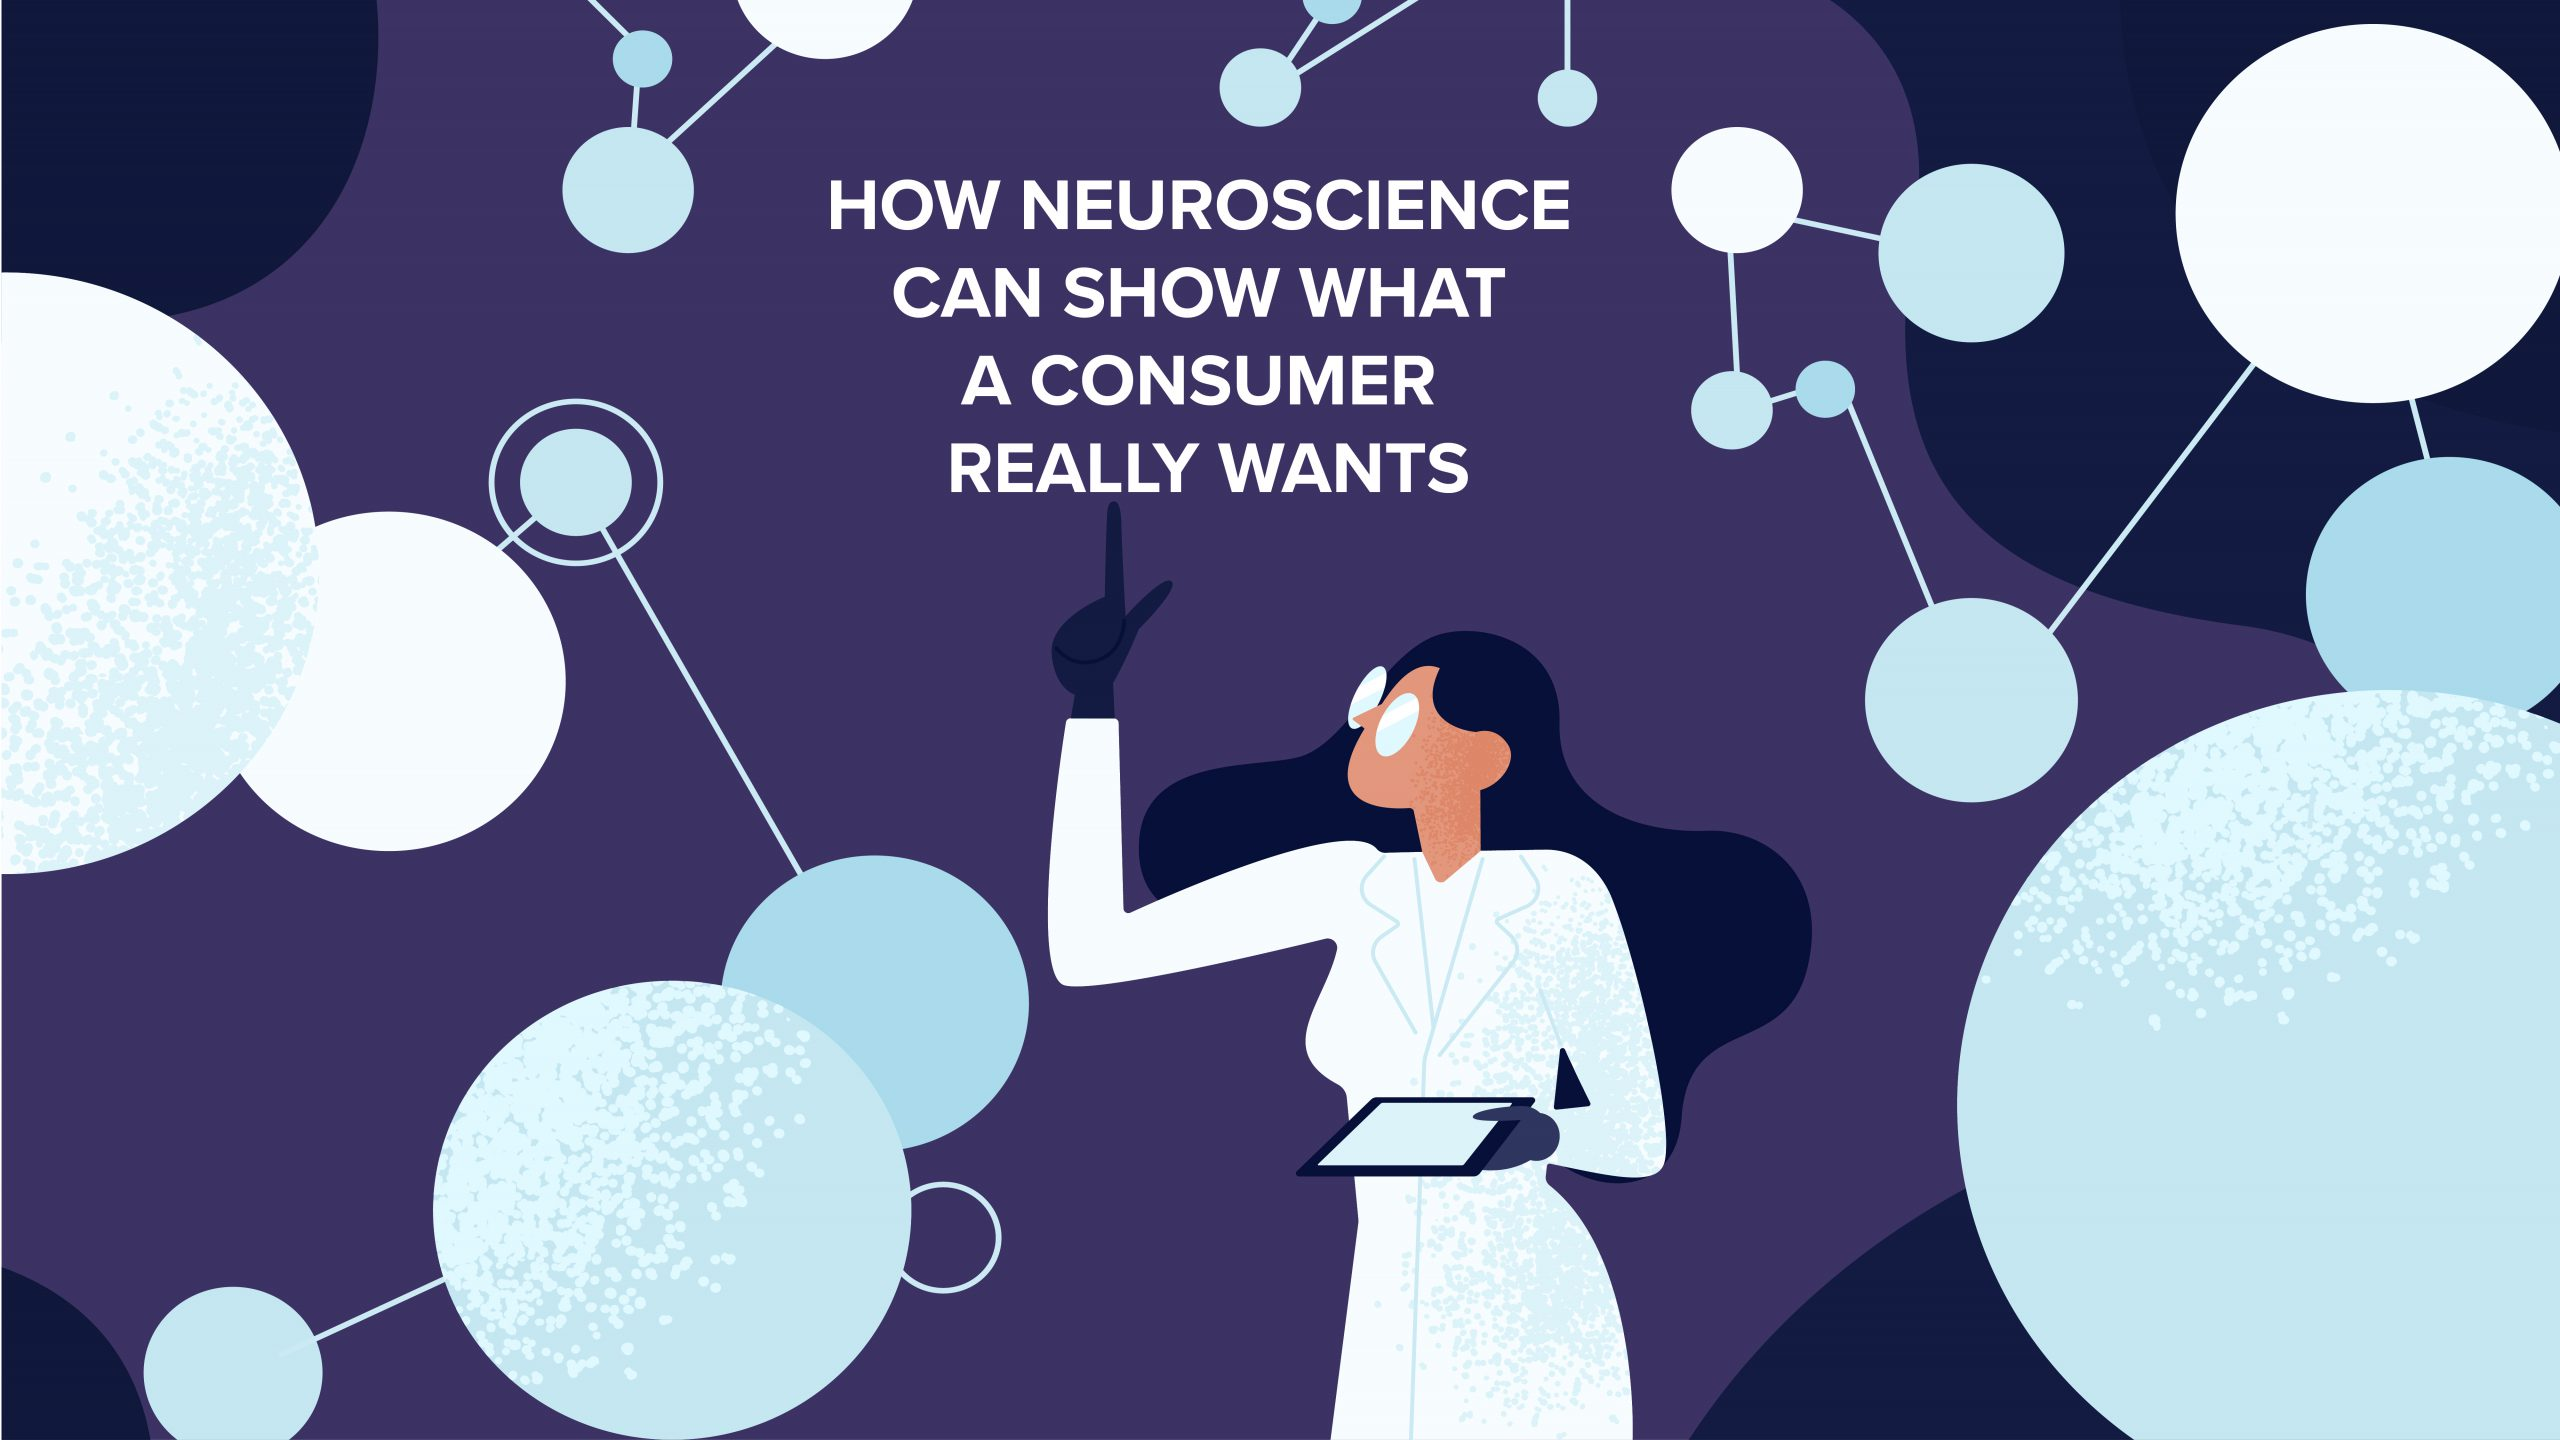 How neuroscience can show what a consumer really wants